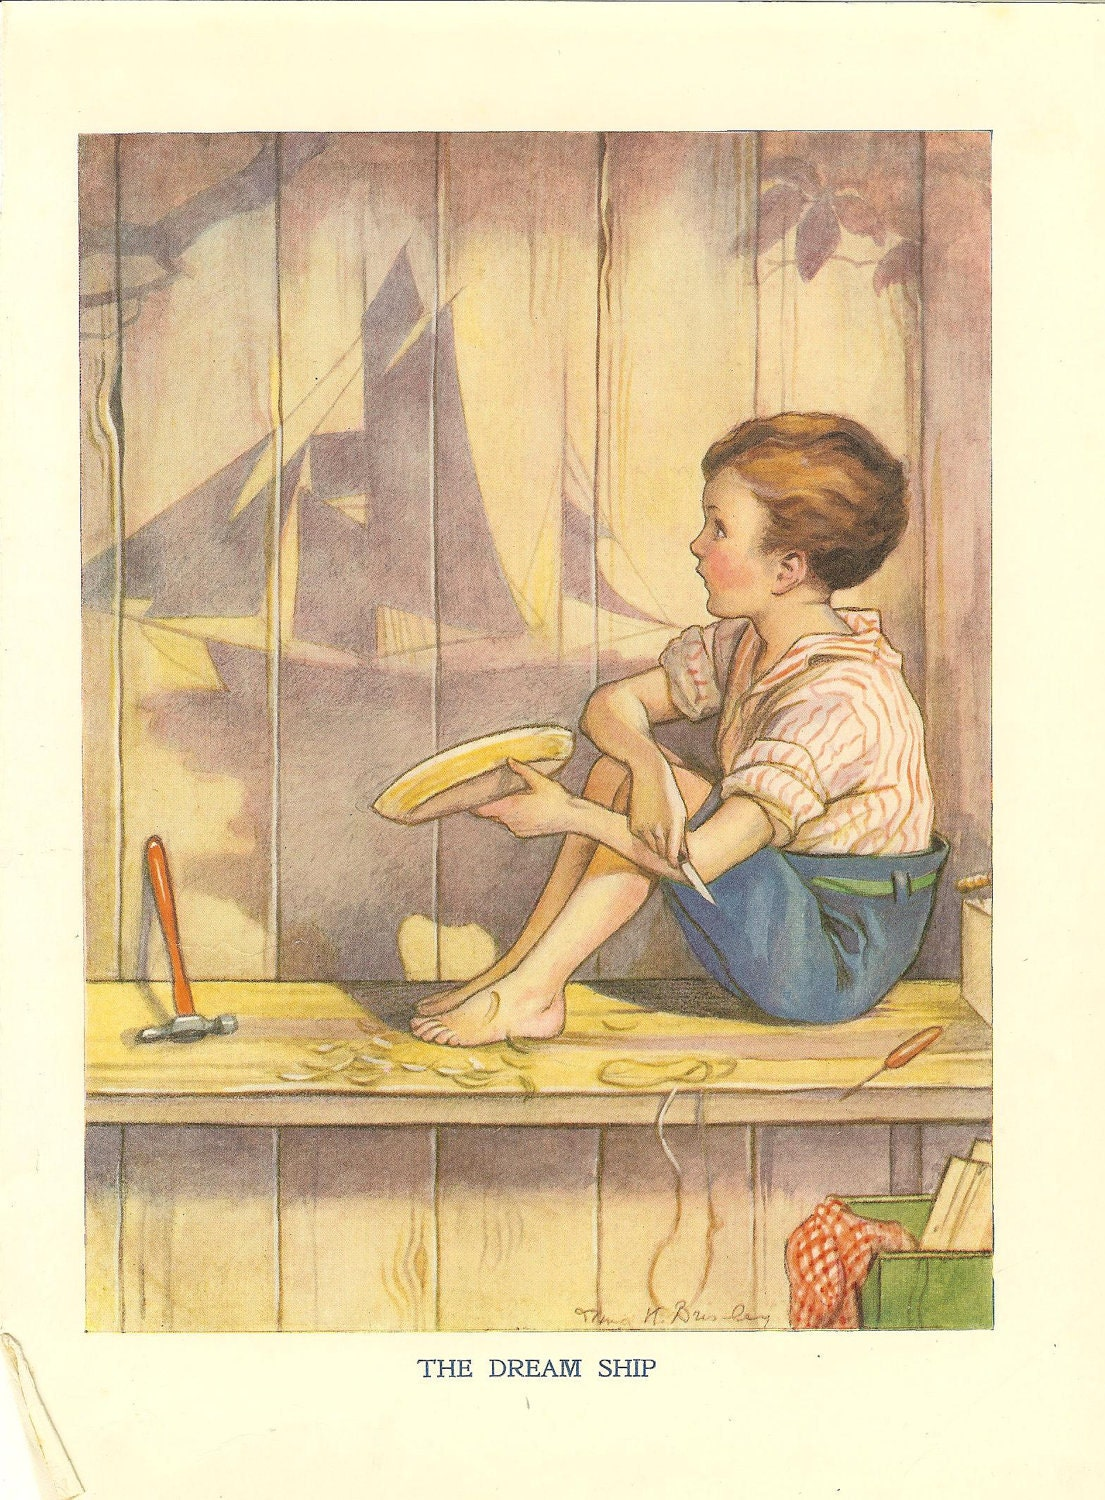 1923 Vintage Childrens Print Boy Sitting Whittling A Boat Out